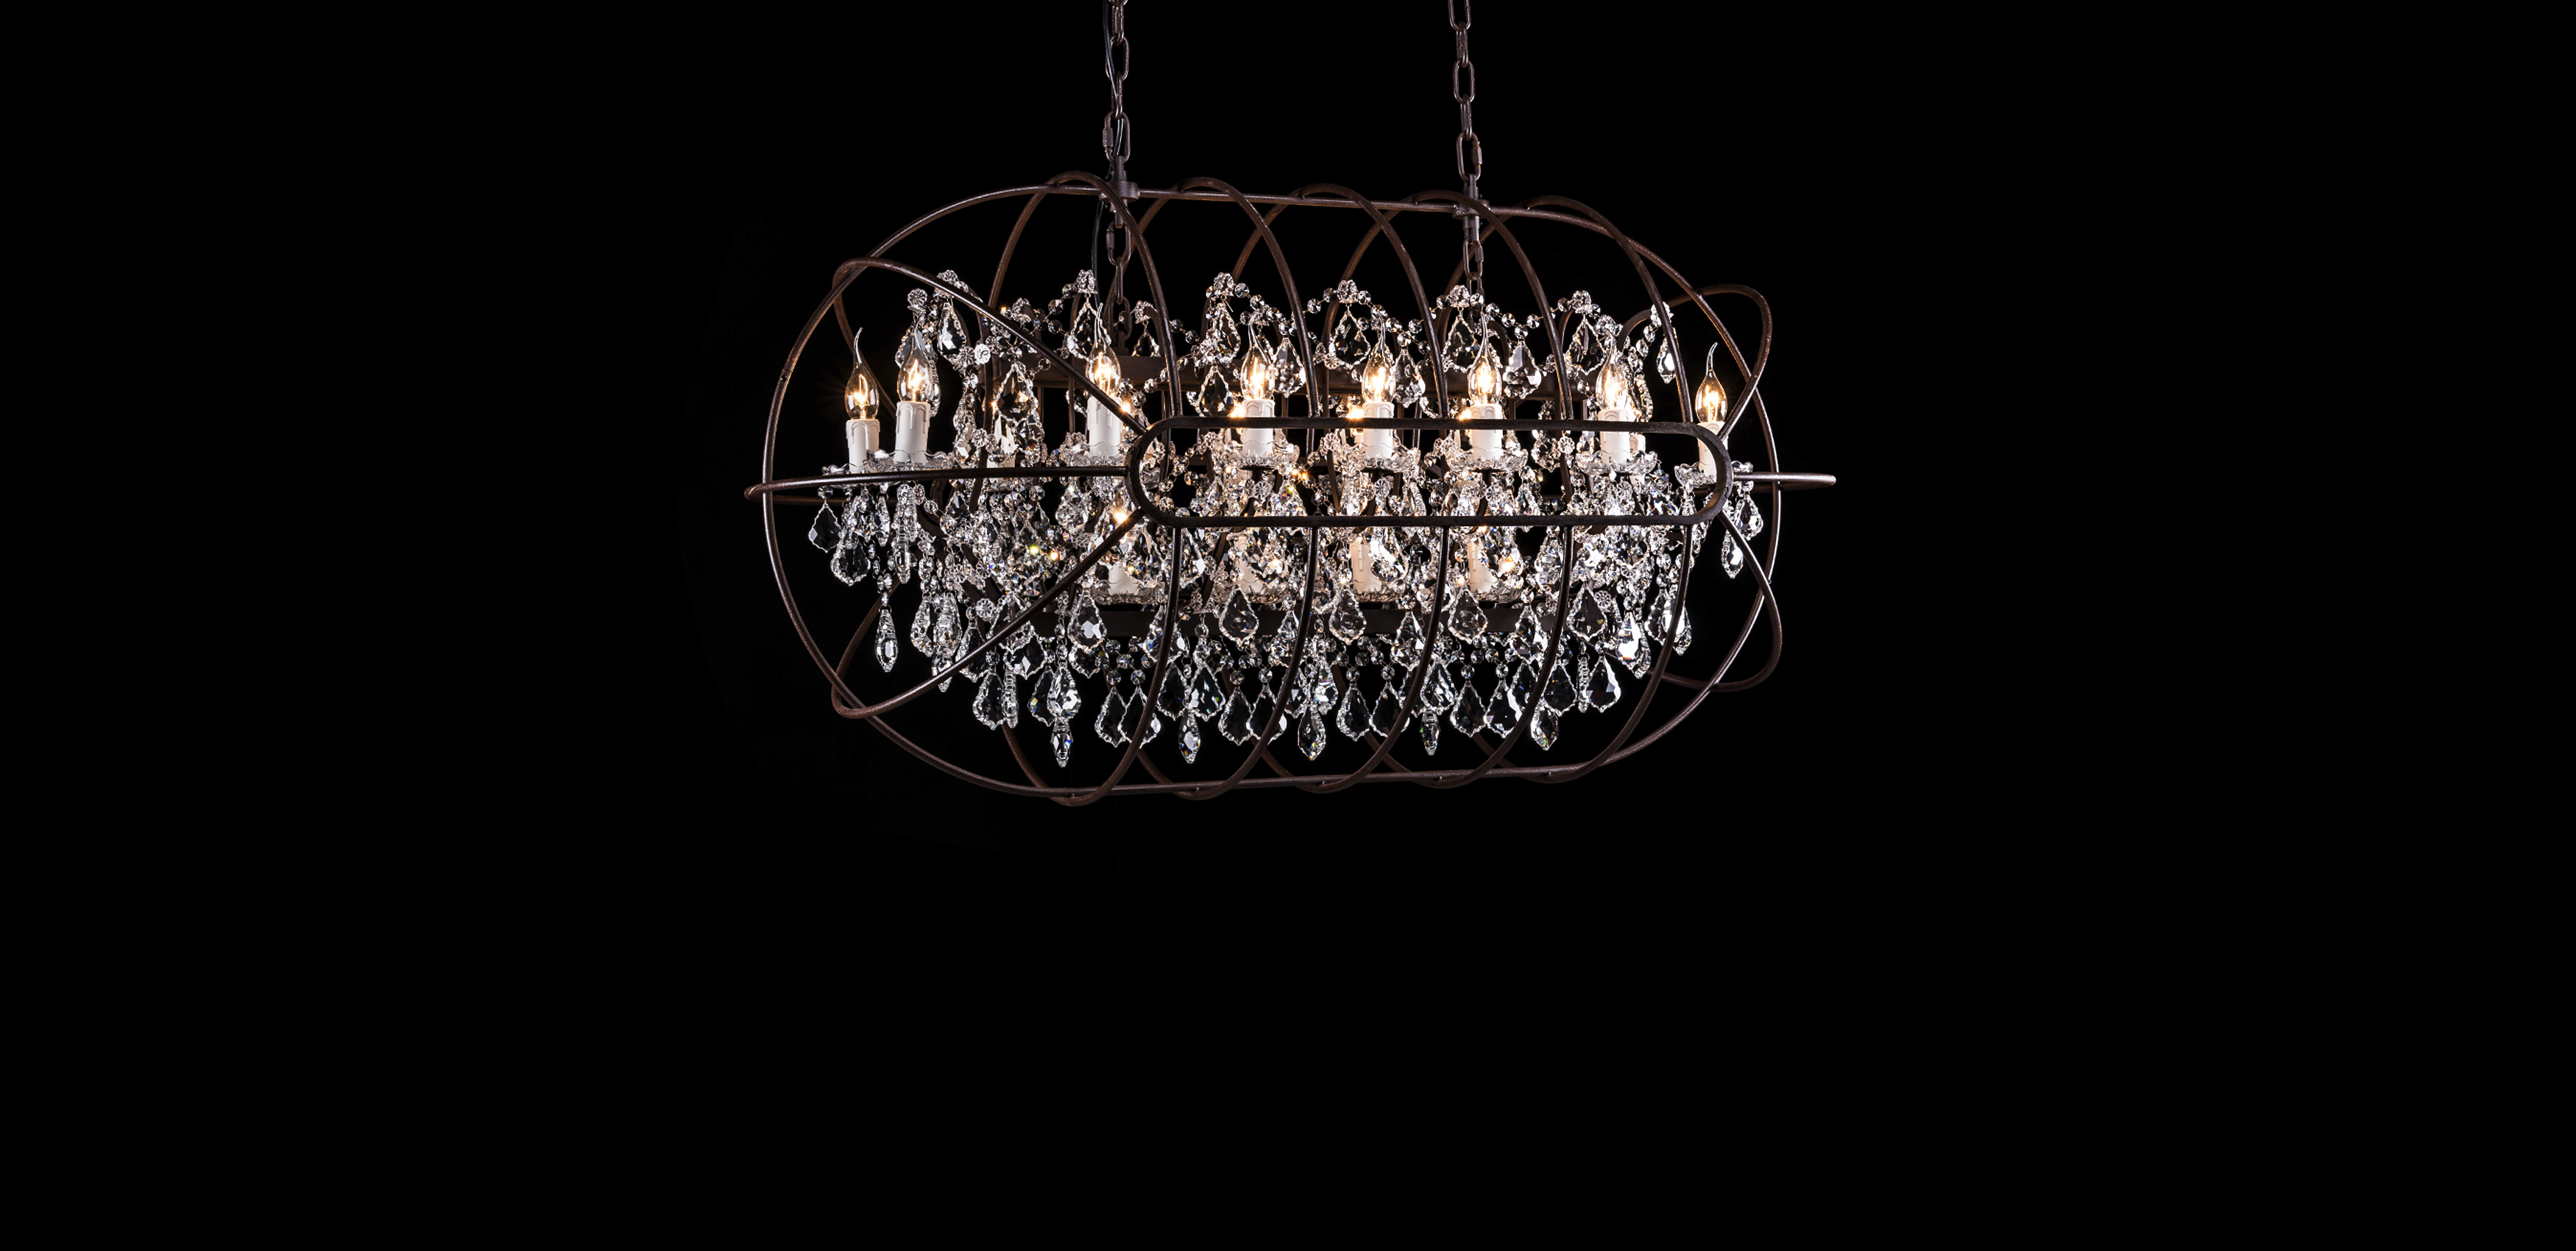 Timothy oulton rectangular chandelier - Gyro Crystal